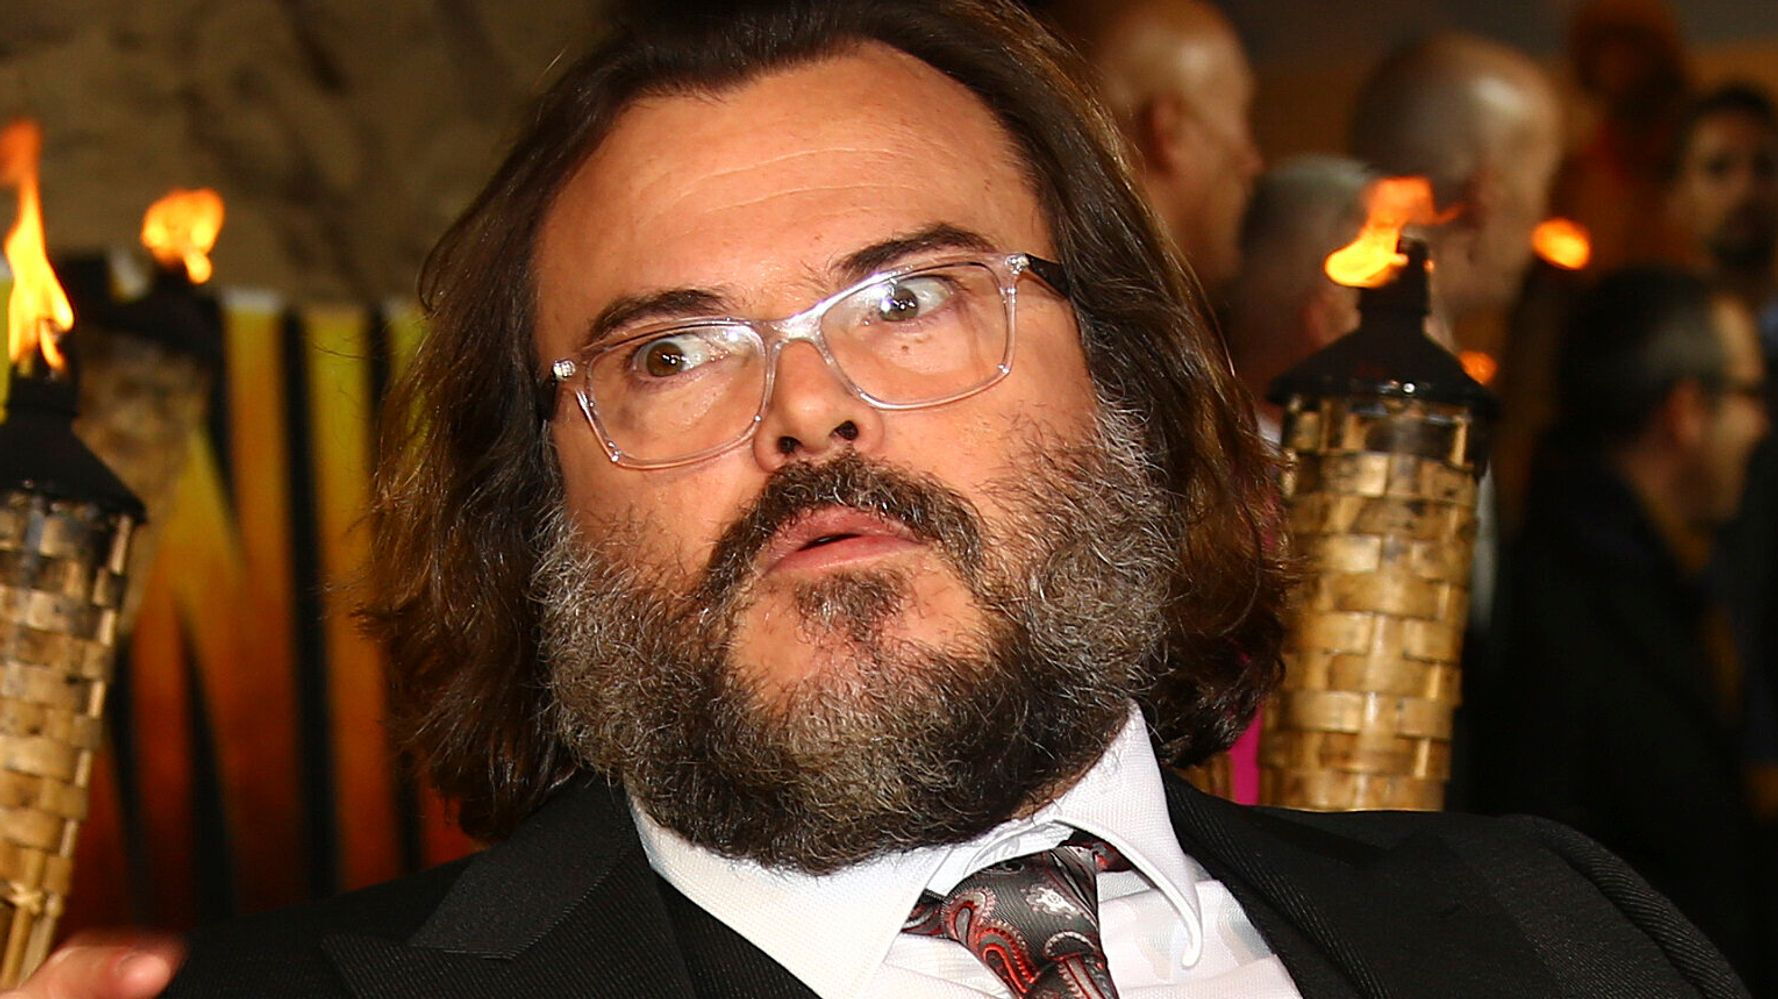 Jack Black Drank A Pint Of Guinness And Inadvertently Sparked A 'Photoshop Battle'